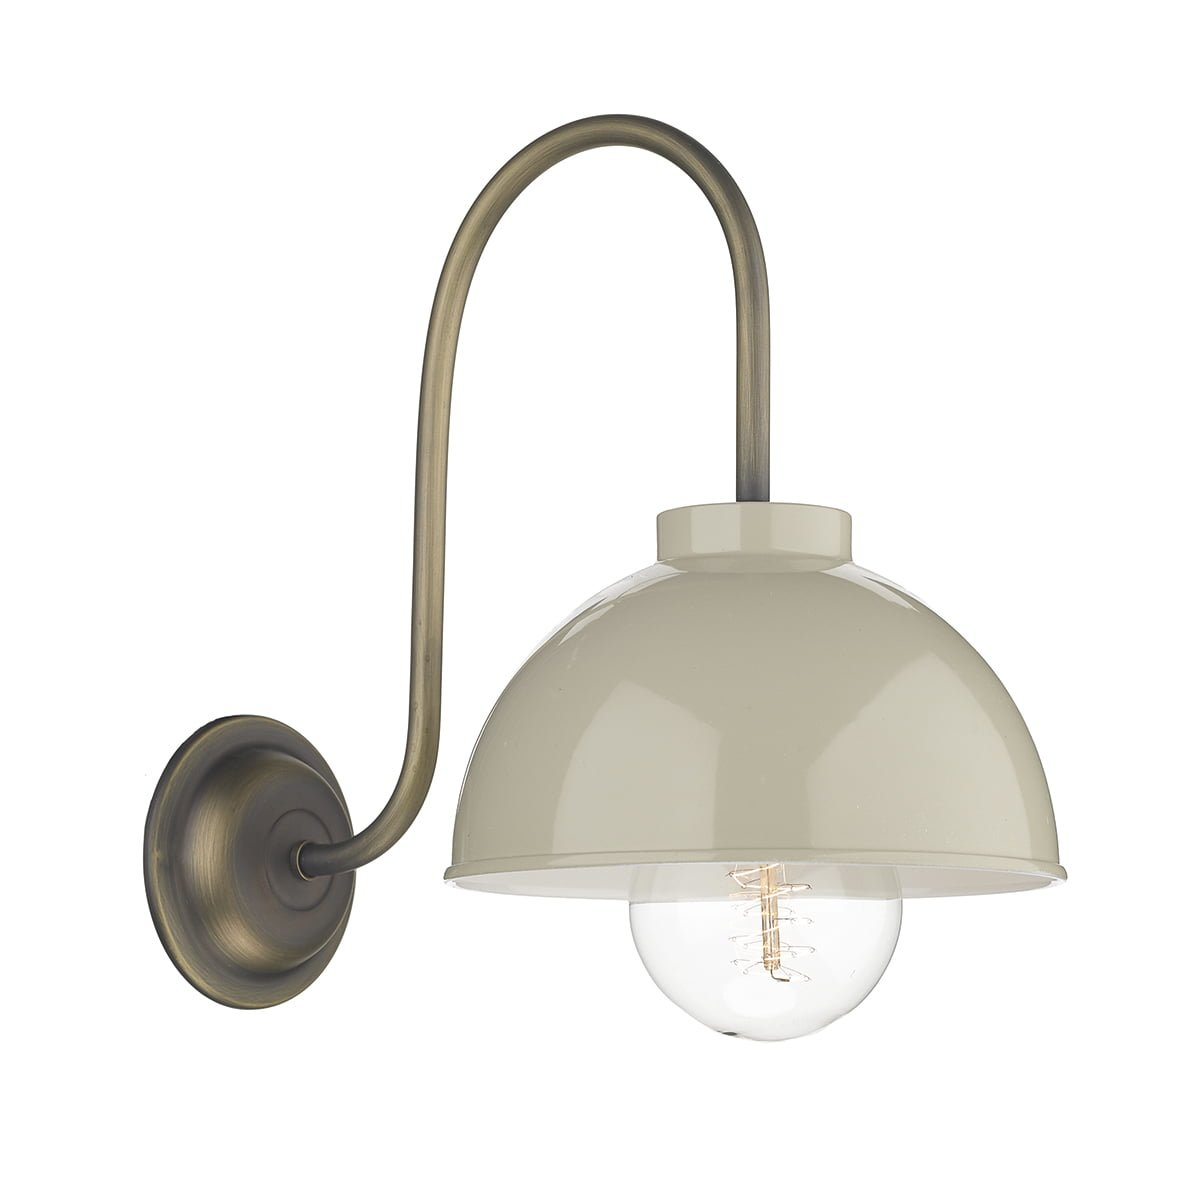 David Hunt Lighting COT0712 Cotswold 1 Light Wall Light in French Cream